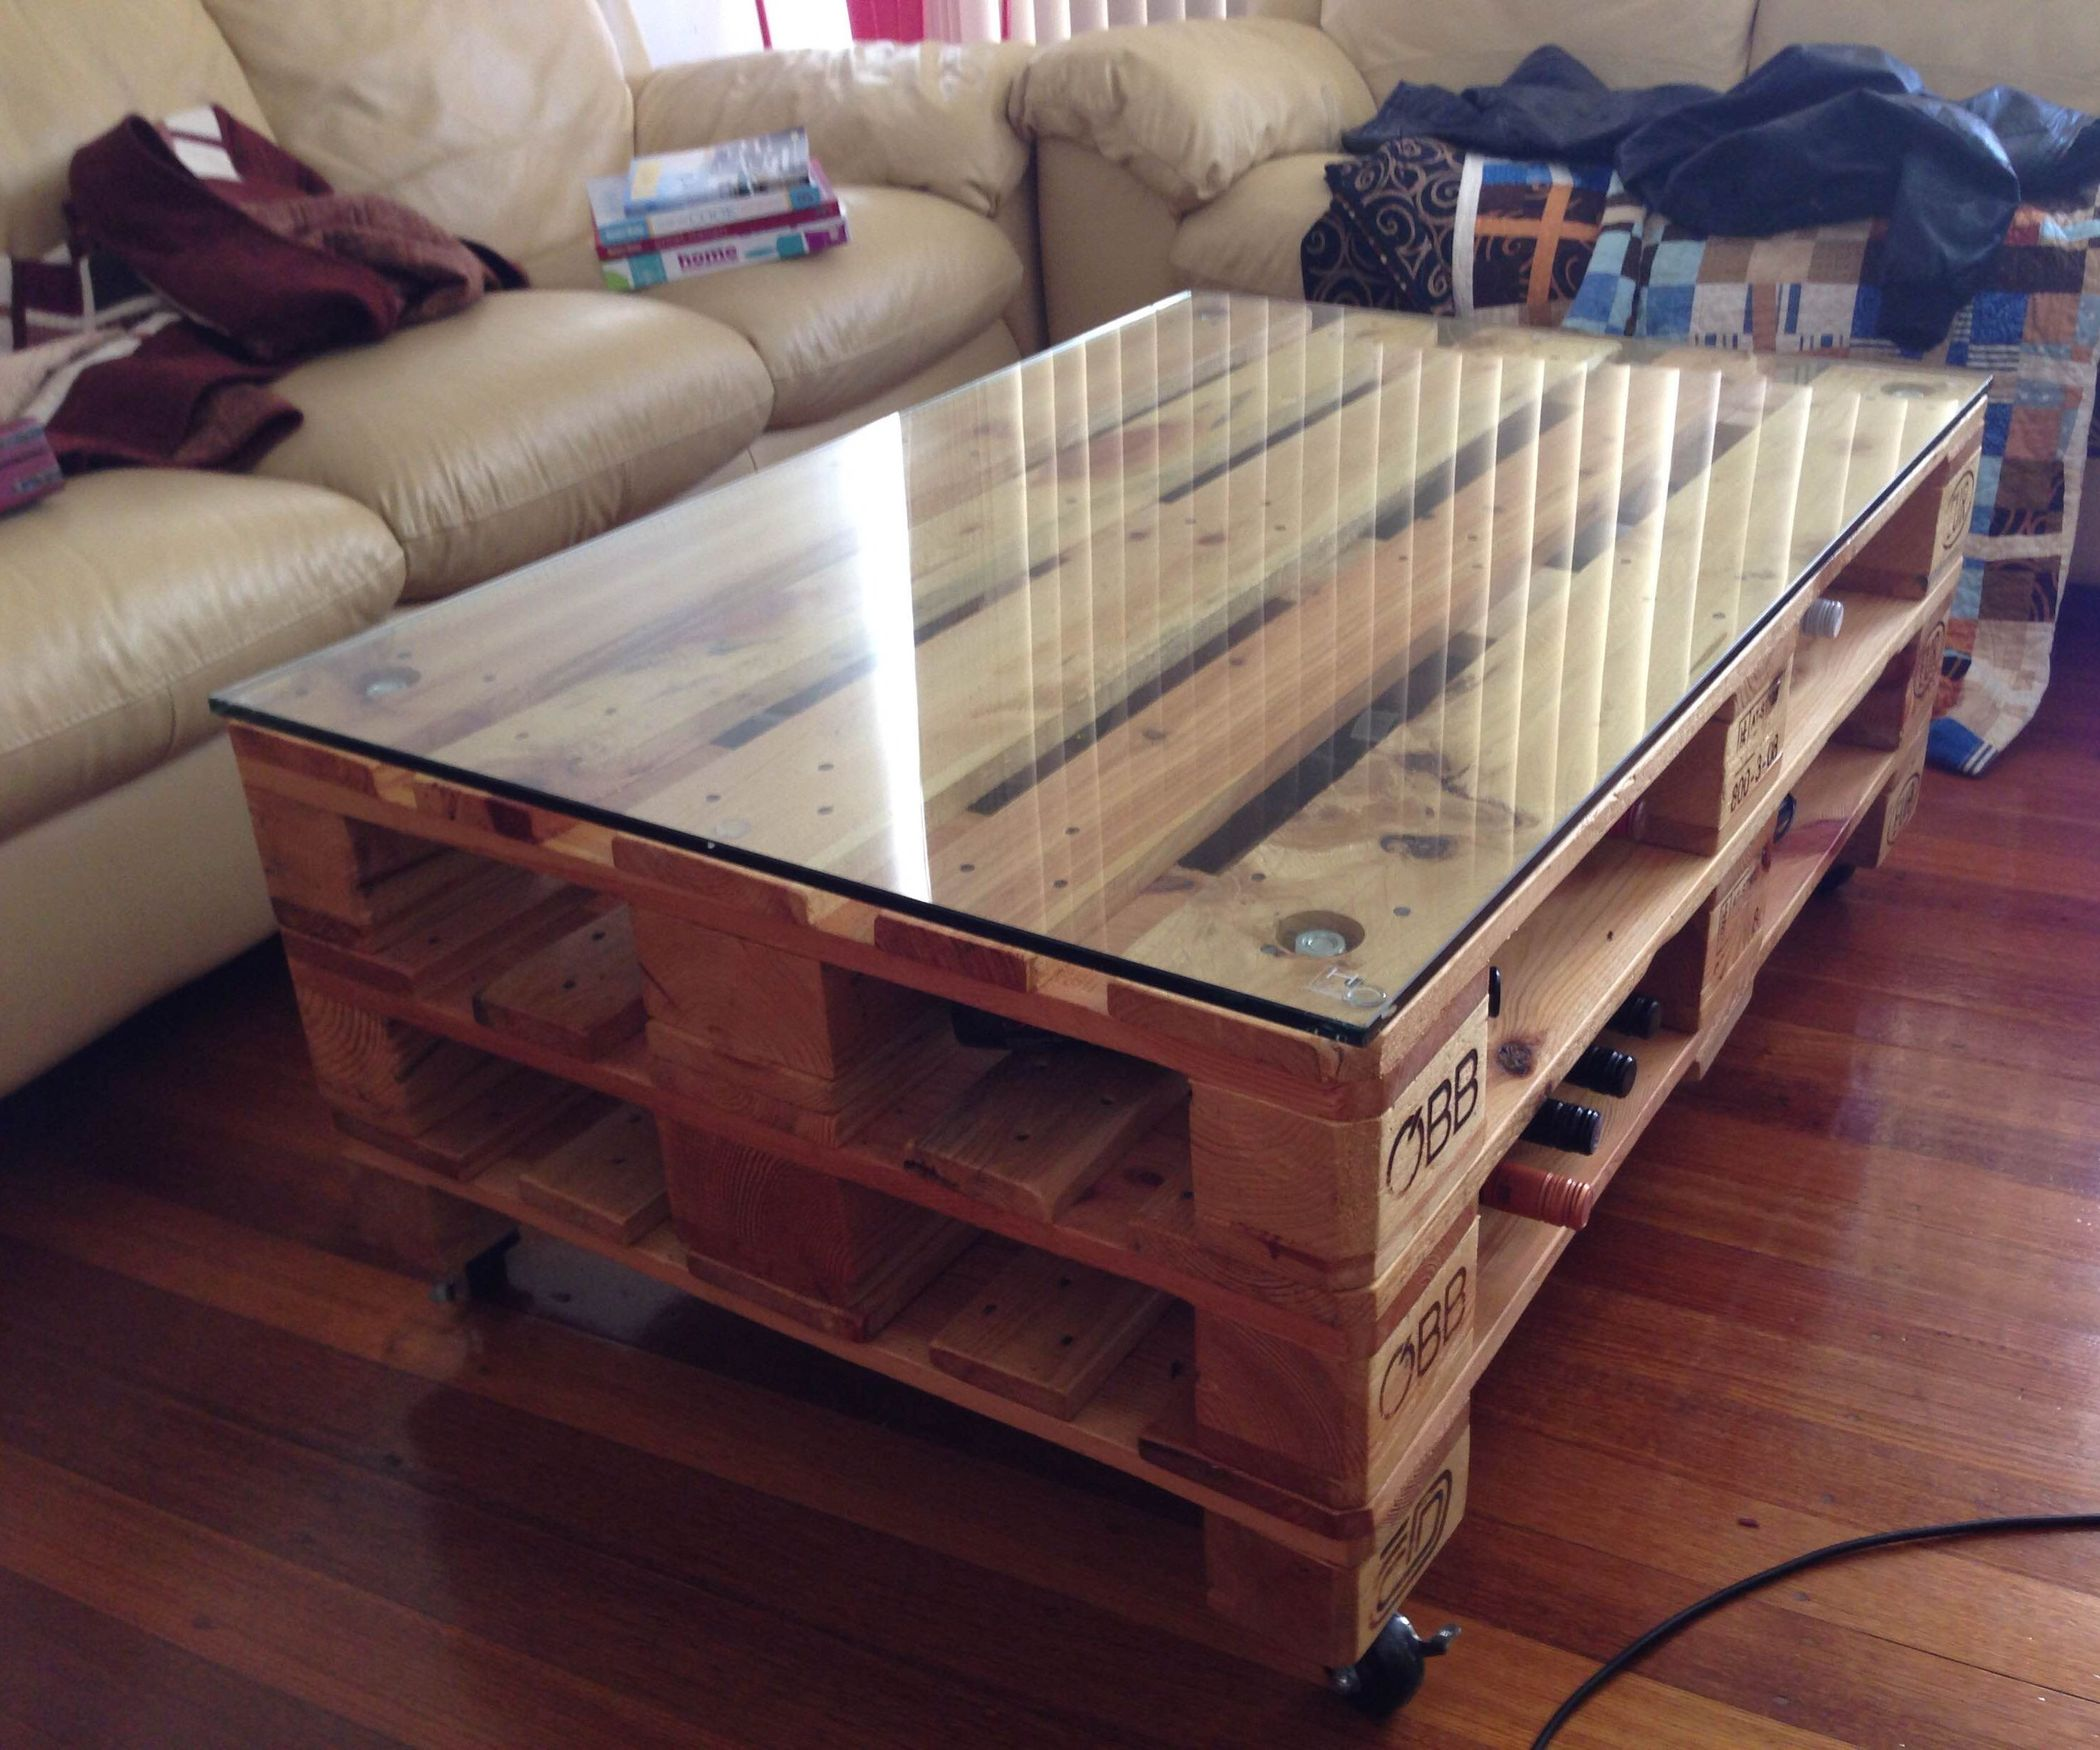 Cool Pallet Coffee Table on wheels Plans